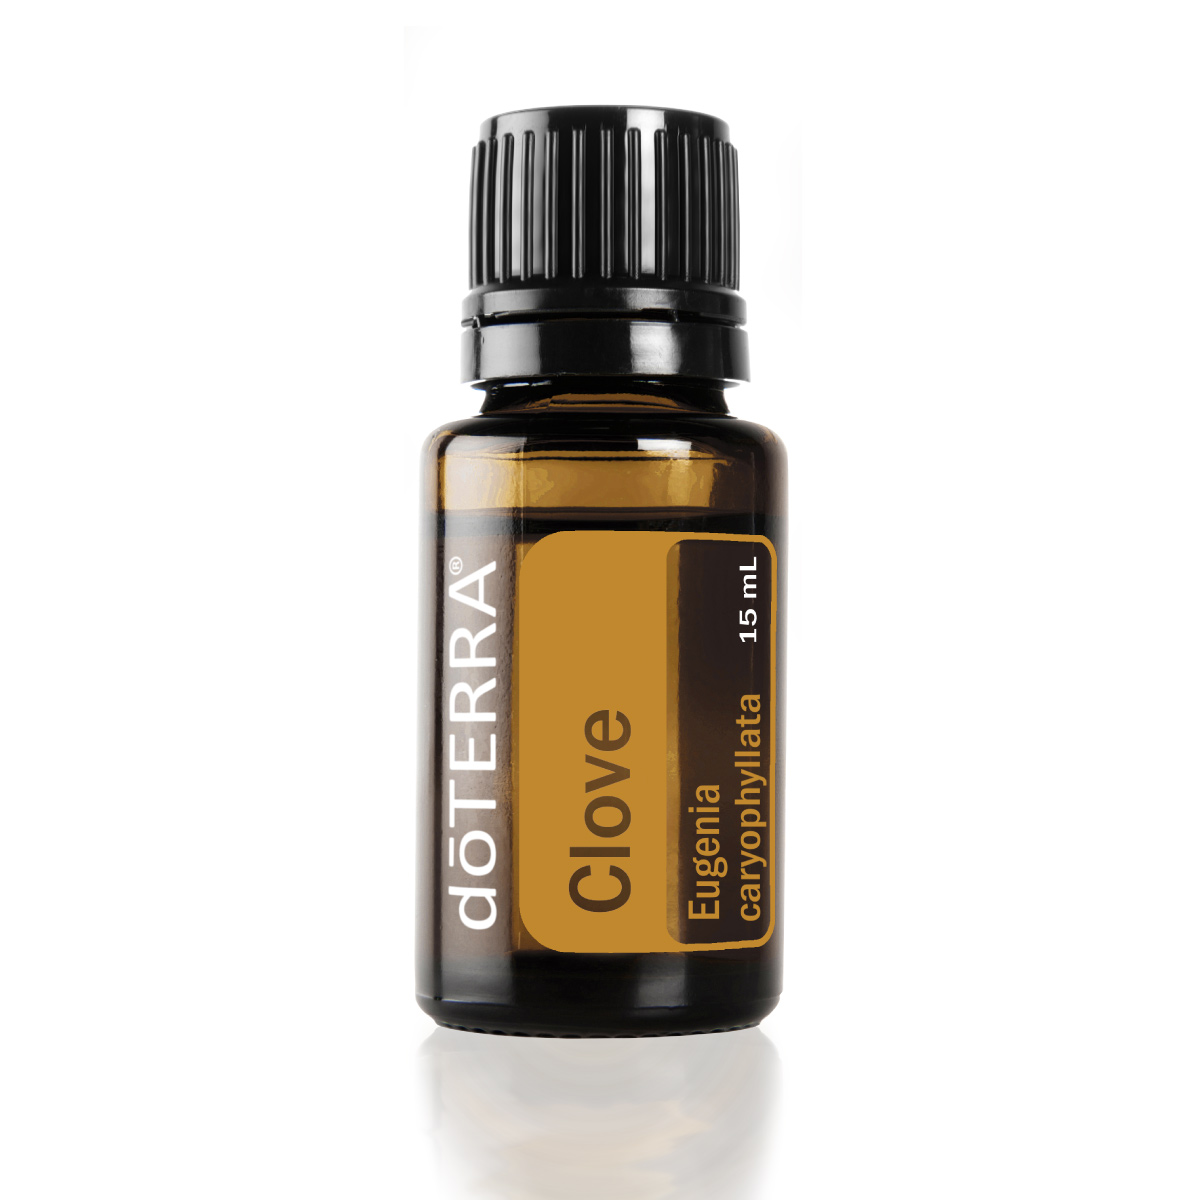 Bottle of doTERRA Clove oil. What is Clove oil used for? Clove essential oil is commonly used to help clean the teeth and gums.